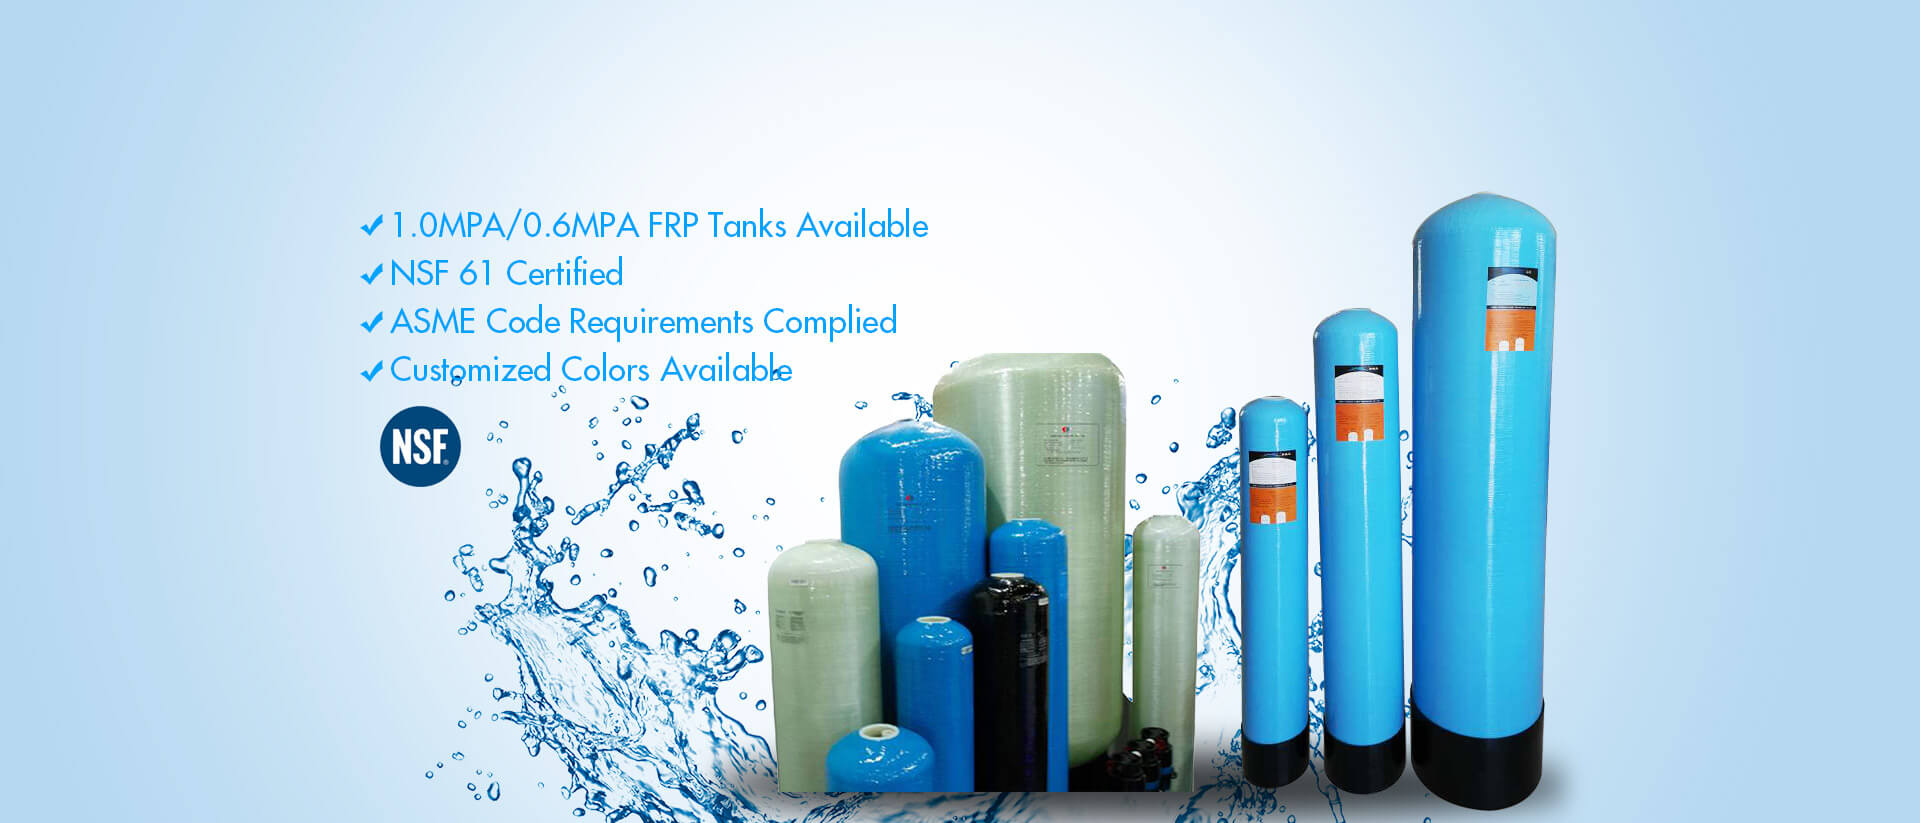 1.0MPA/0.6MPA FRP Tanks Available